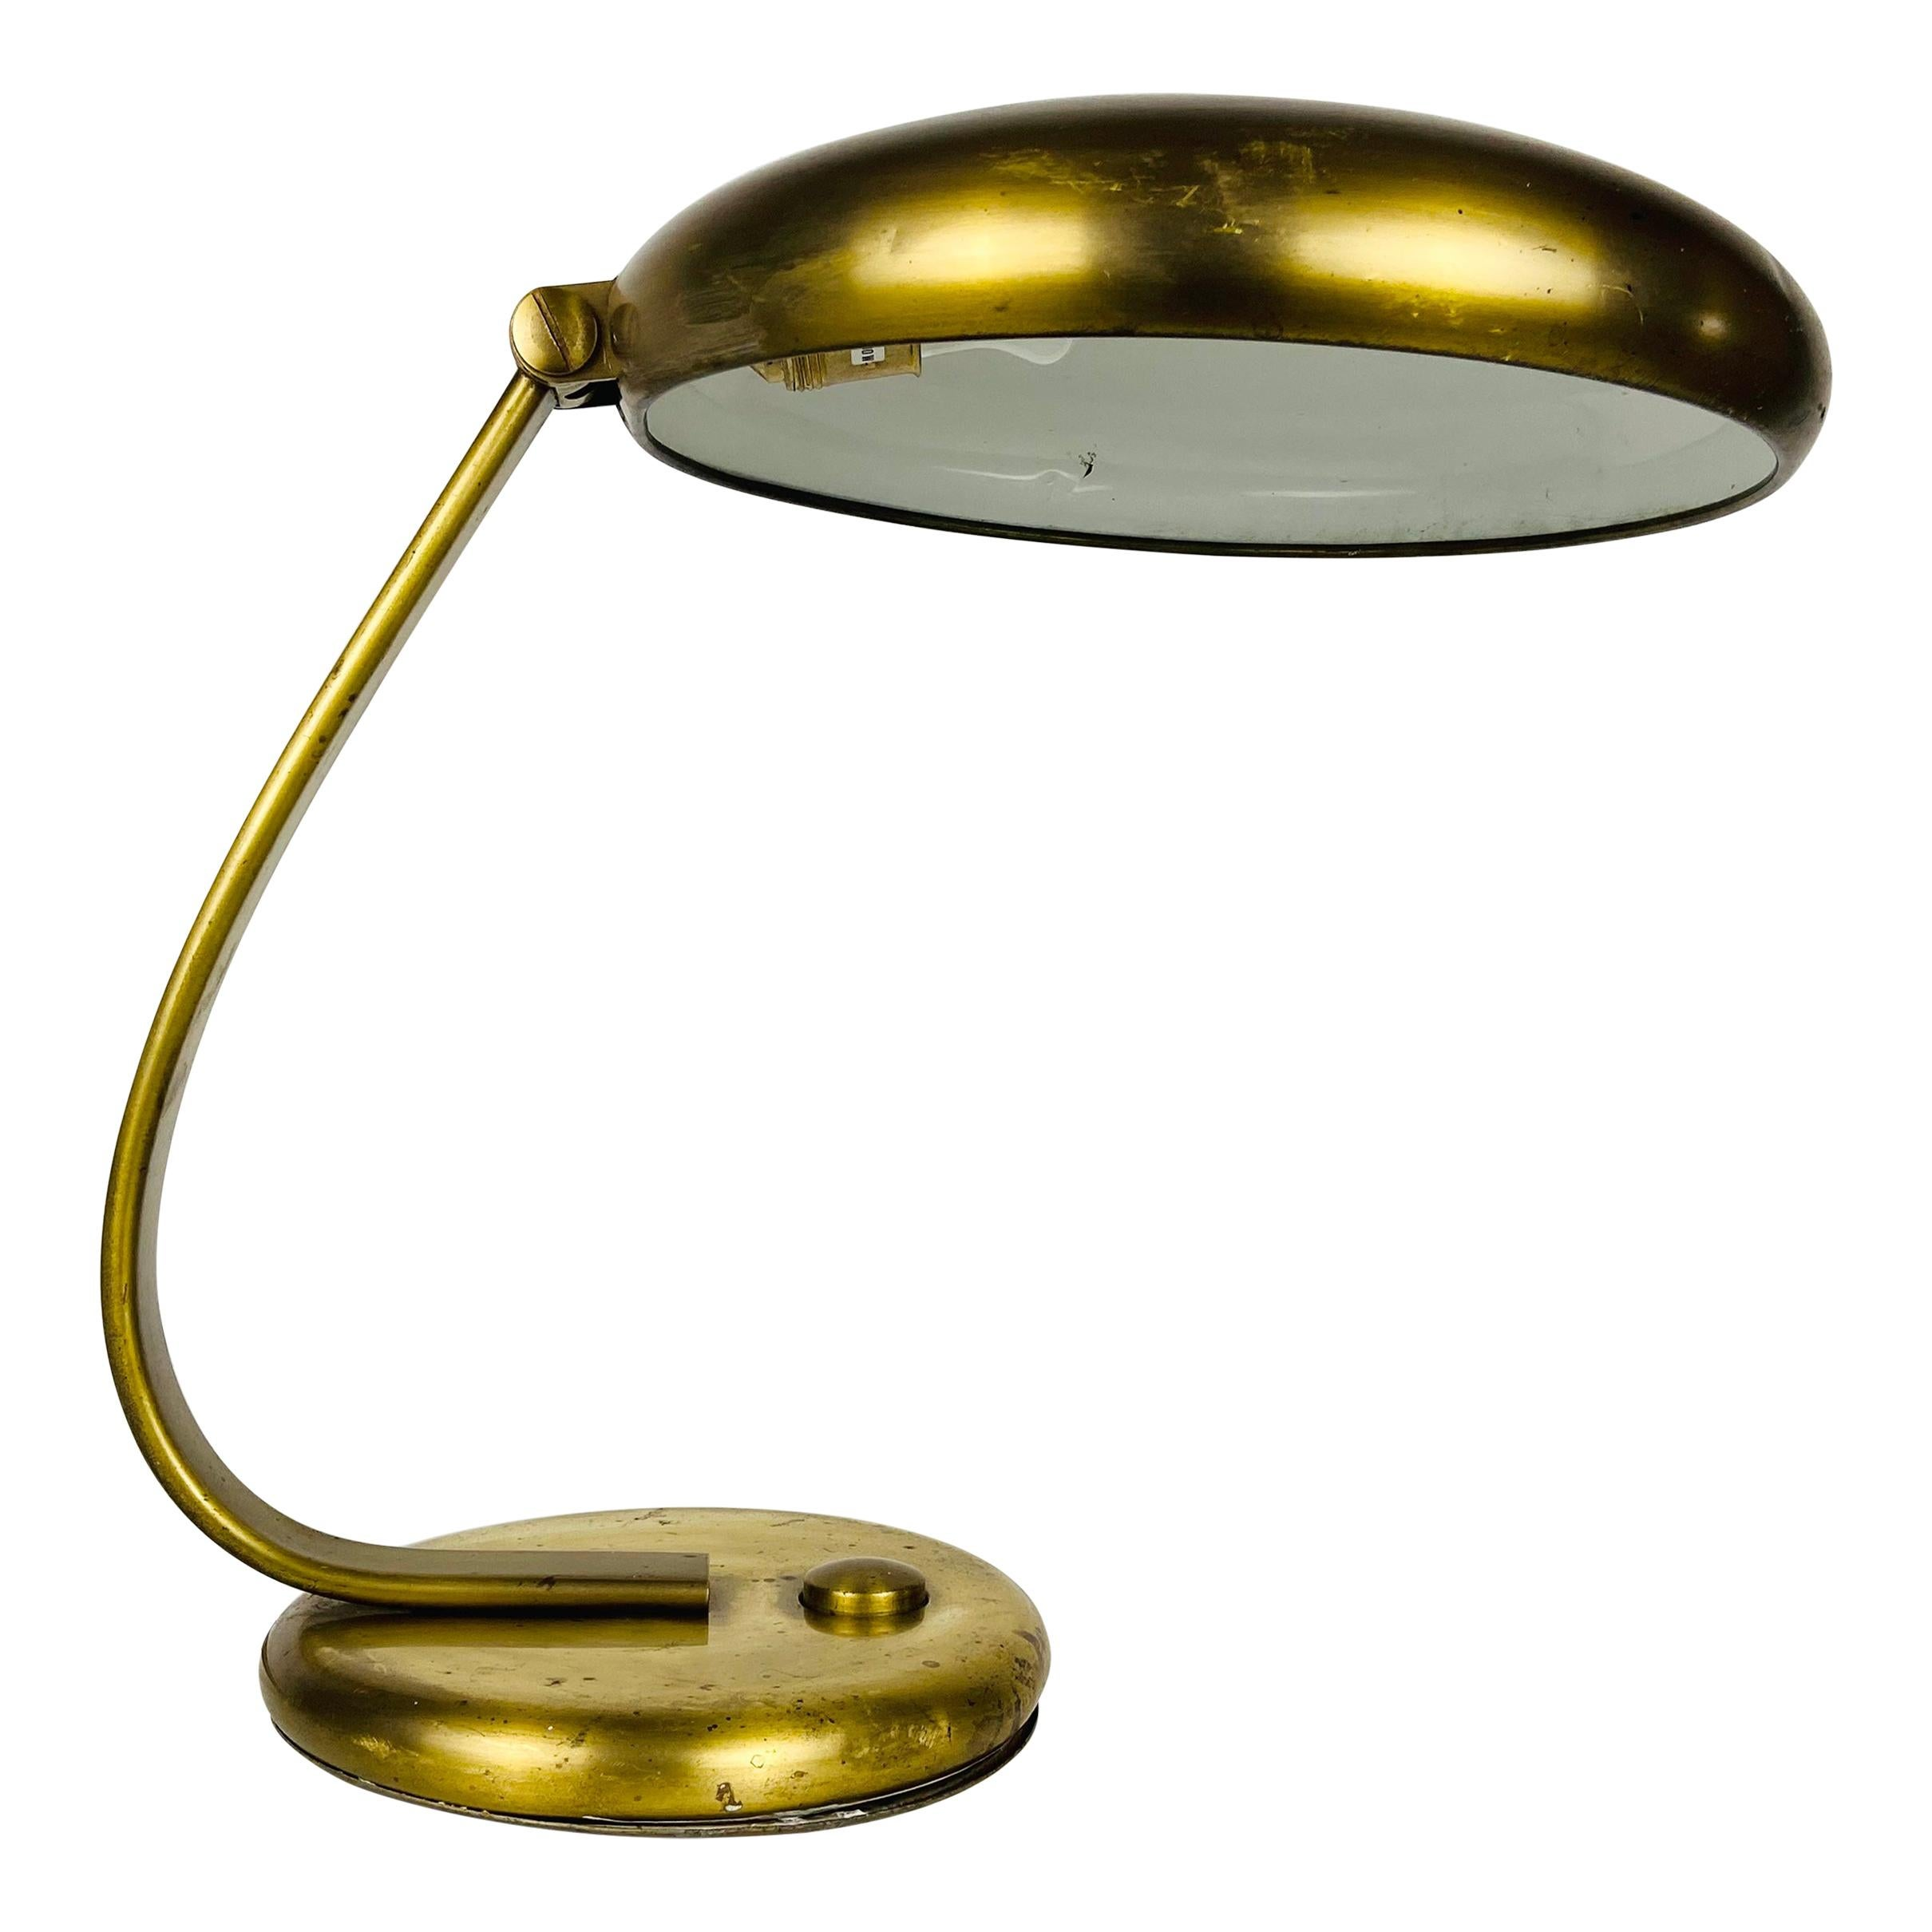 Hillebrand Midcentury Full Brass Table Lamp, 1960s, Germany